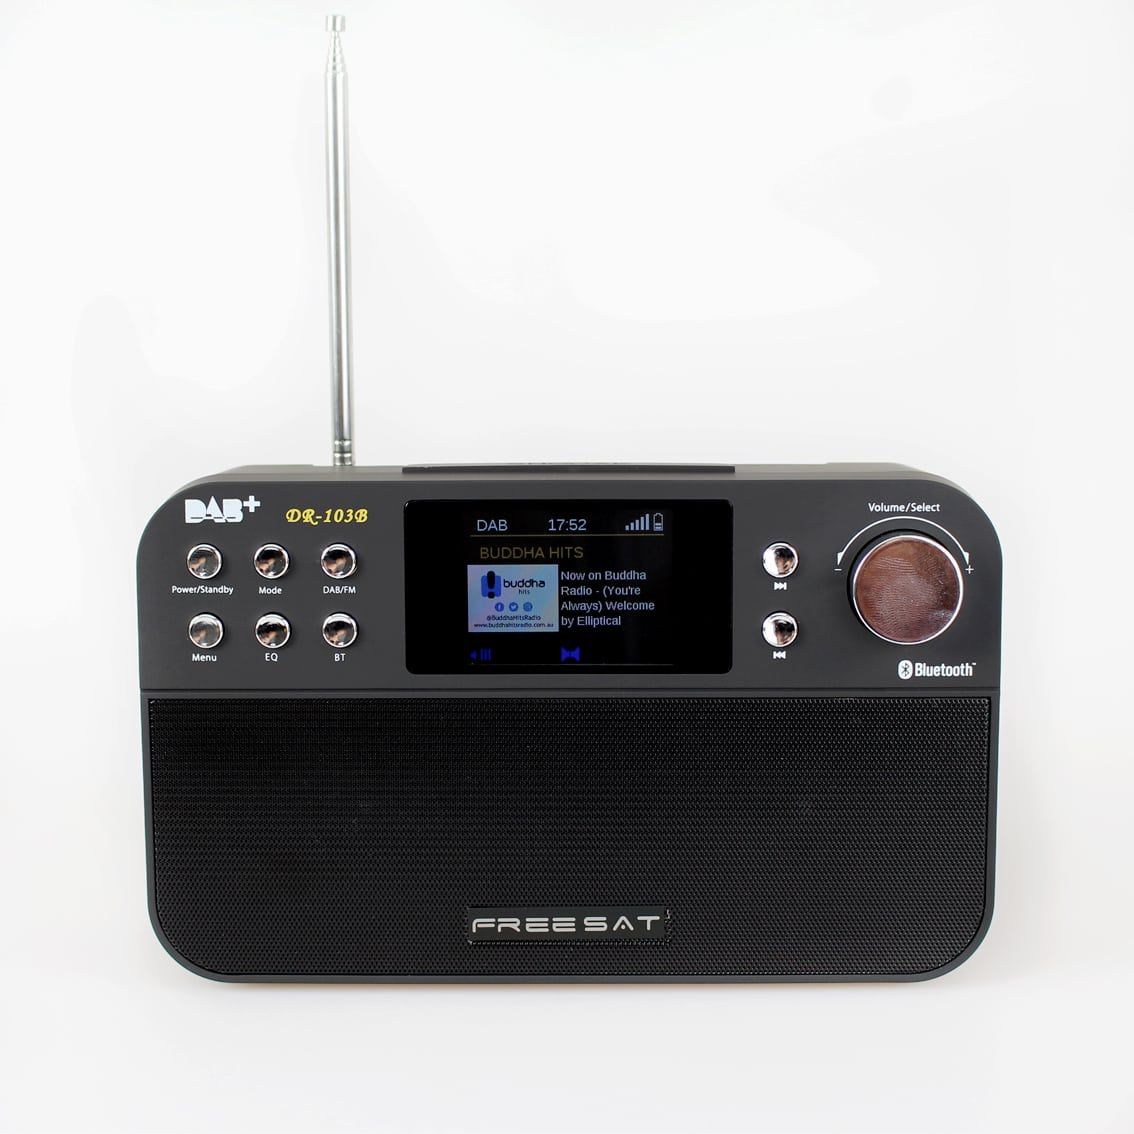 portable dab digital fm radio with bluetooth speaker. Black Bedroom Furniture Sets. Home Design Ideas